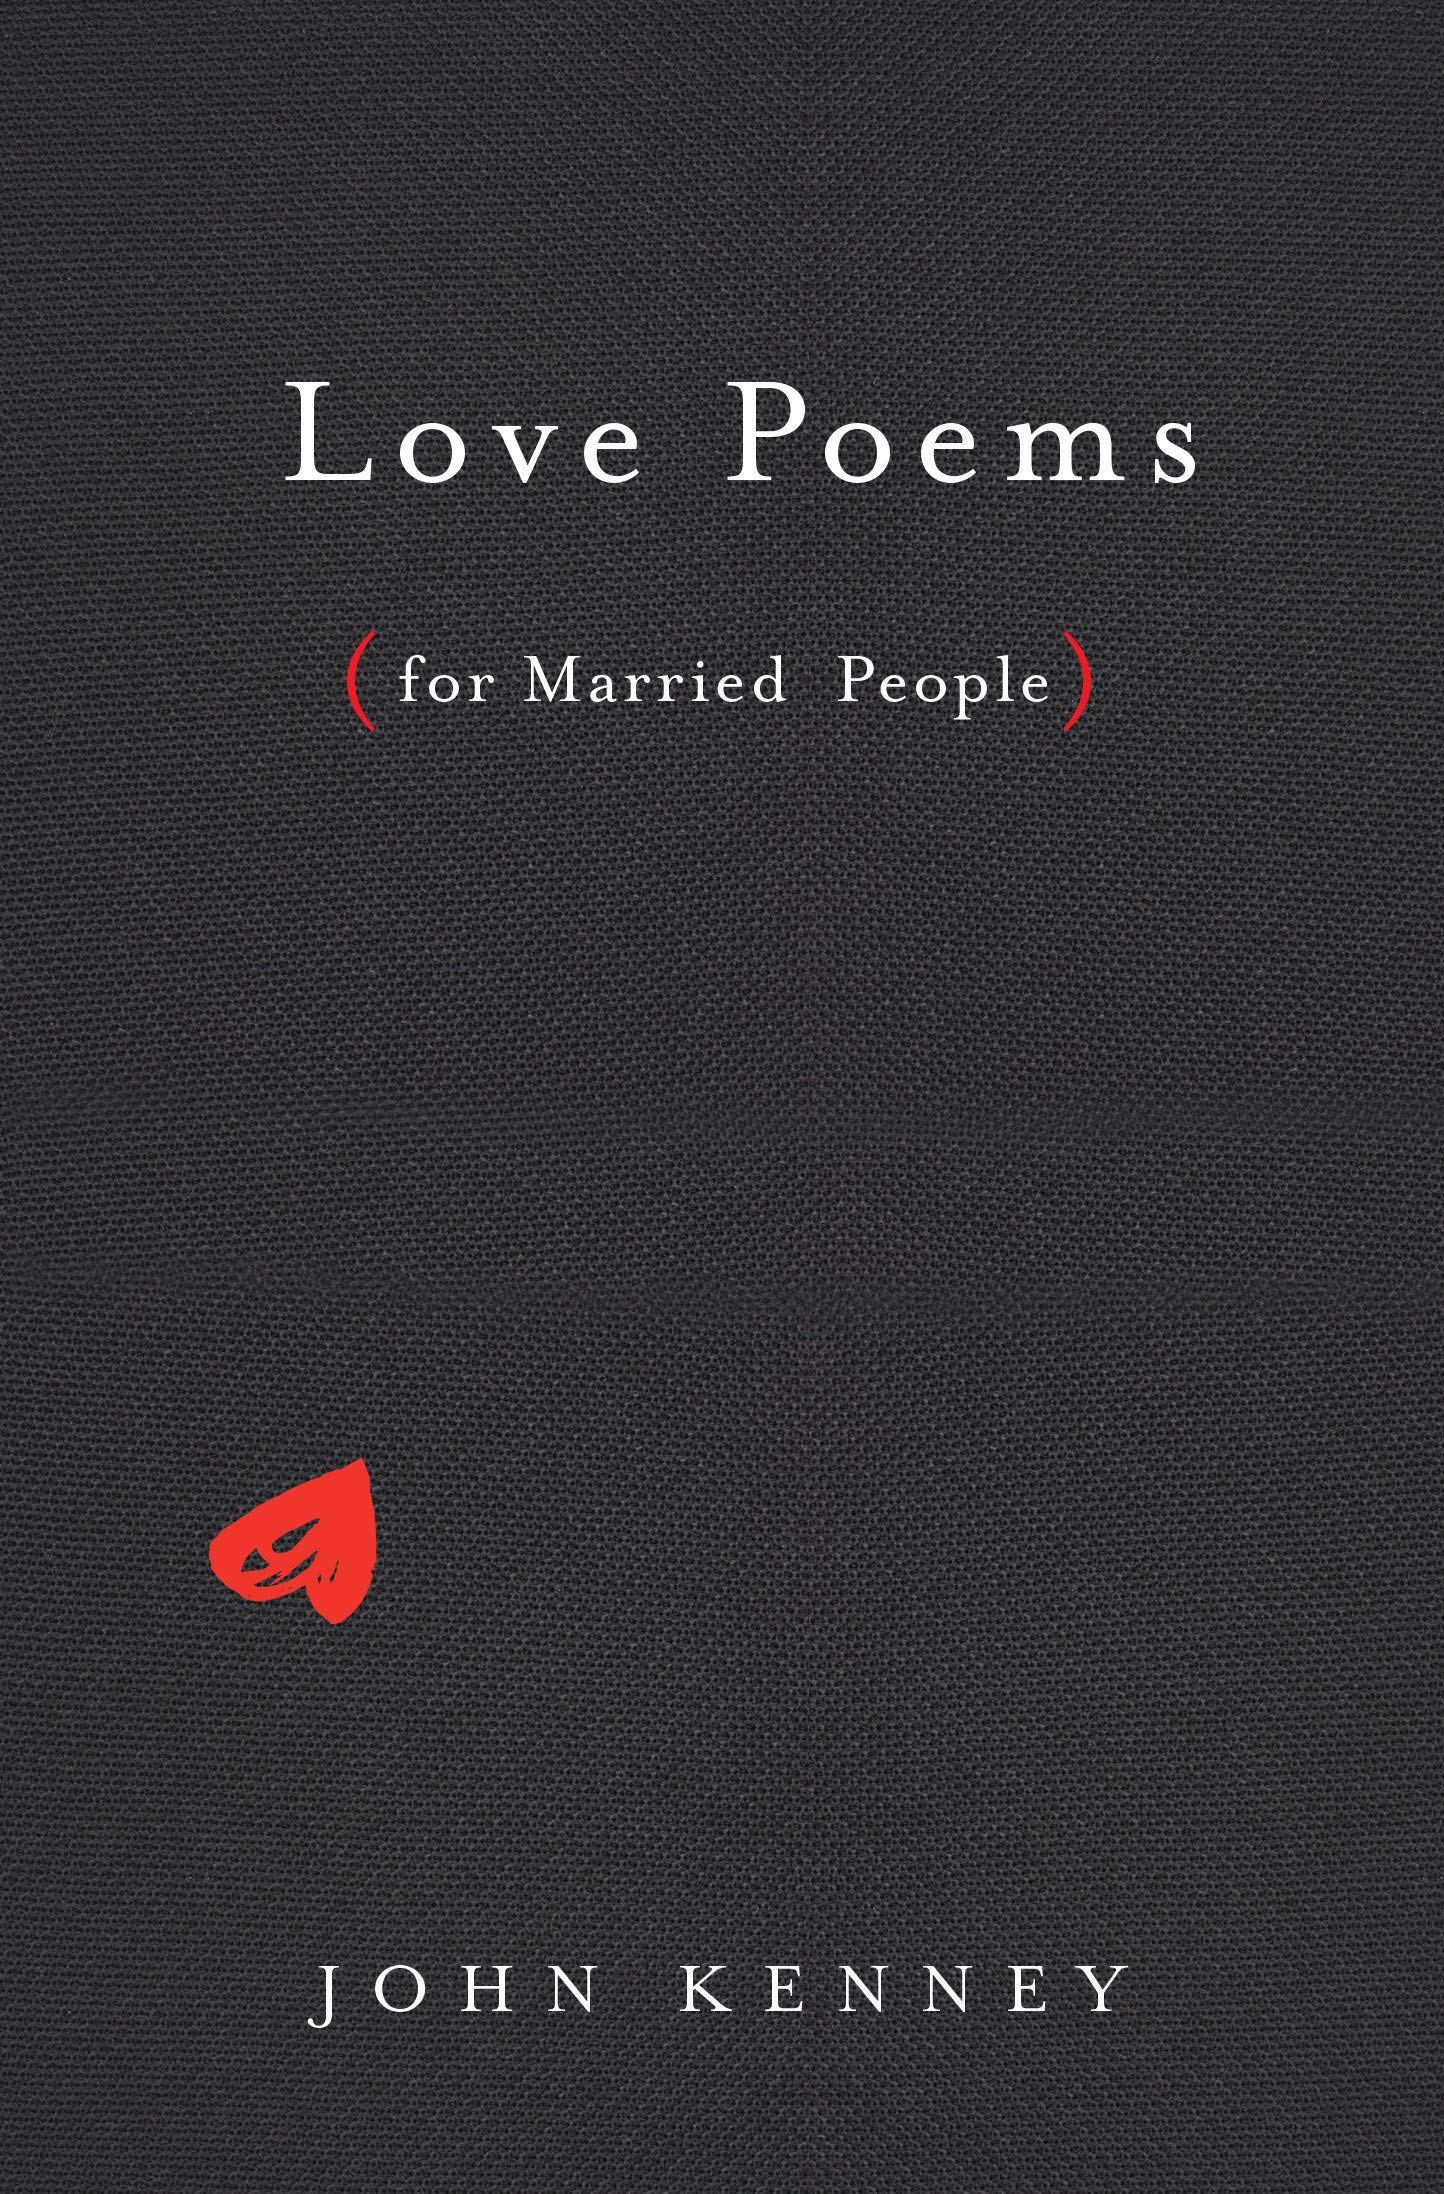 Love Poems for Married People: John Kenney: 9780525540007